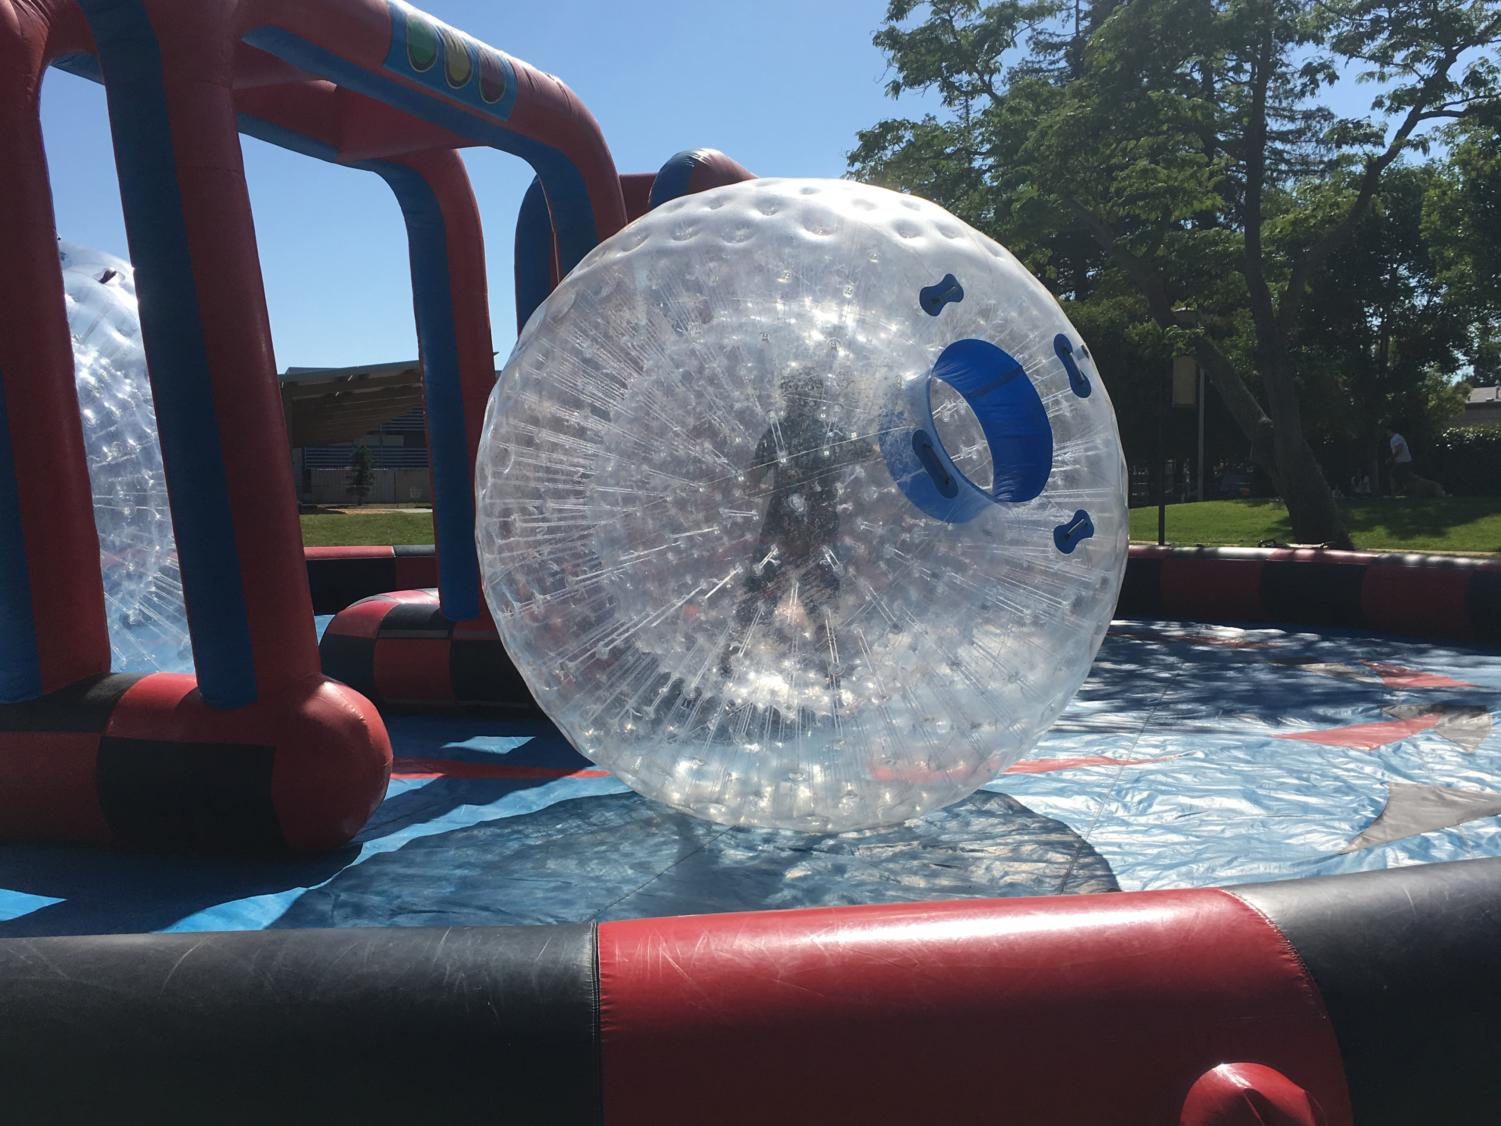 A+teen+rolls+in+a+giant+hamster+ball+in+to+celebrate+the+start+of+summer.+